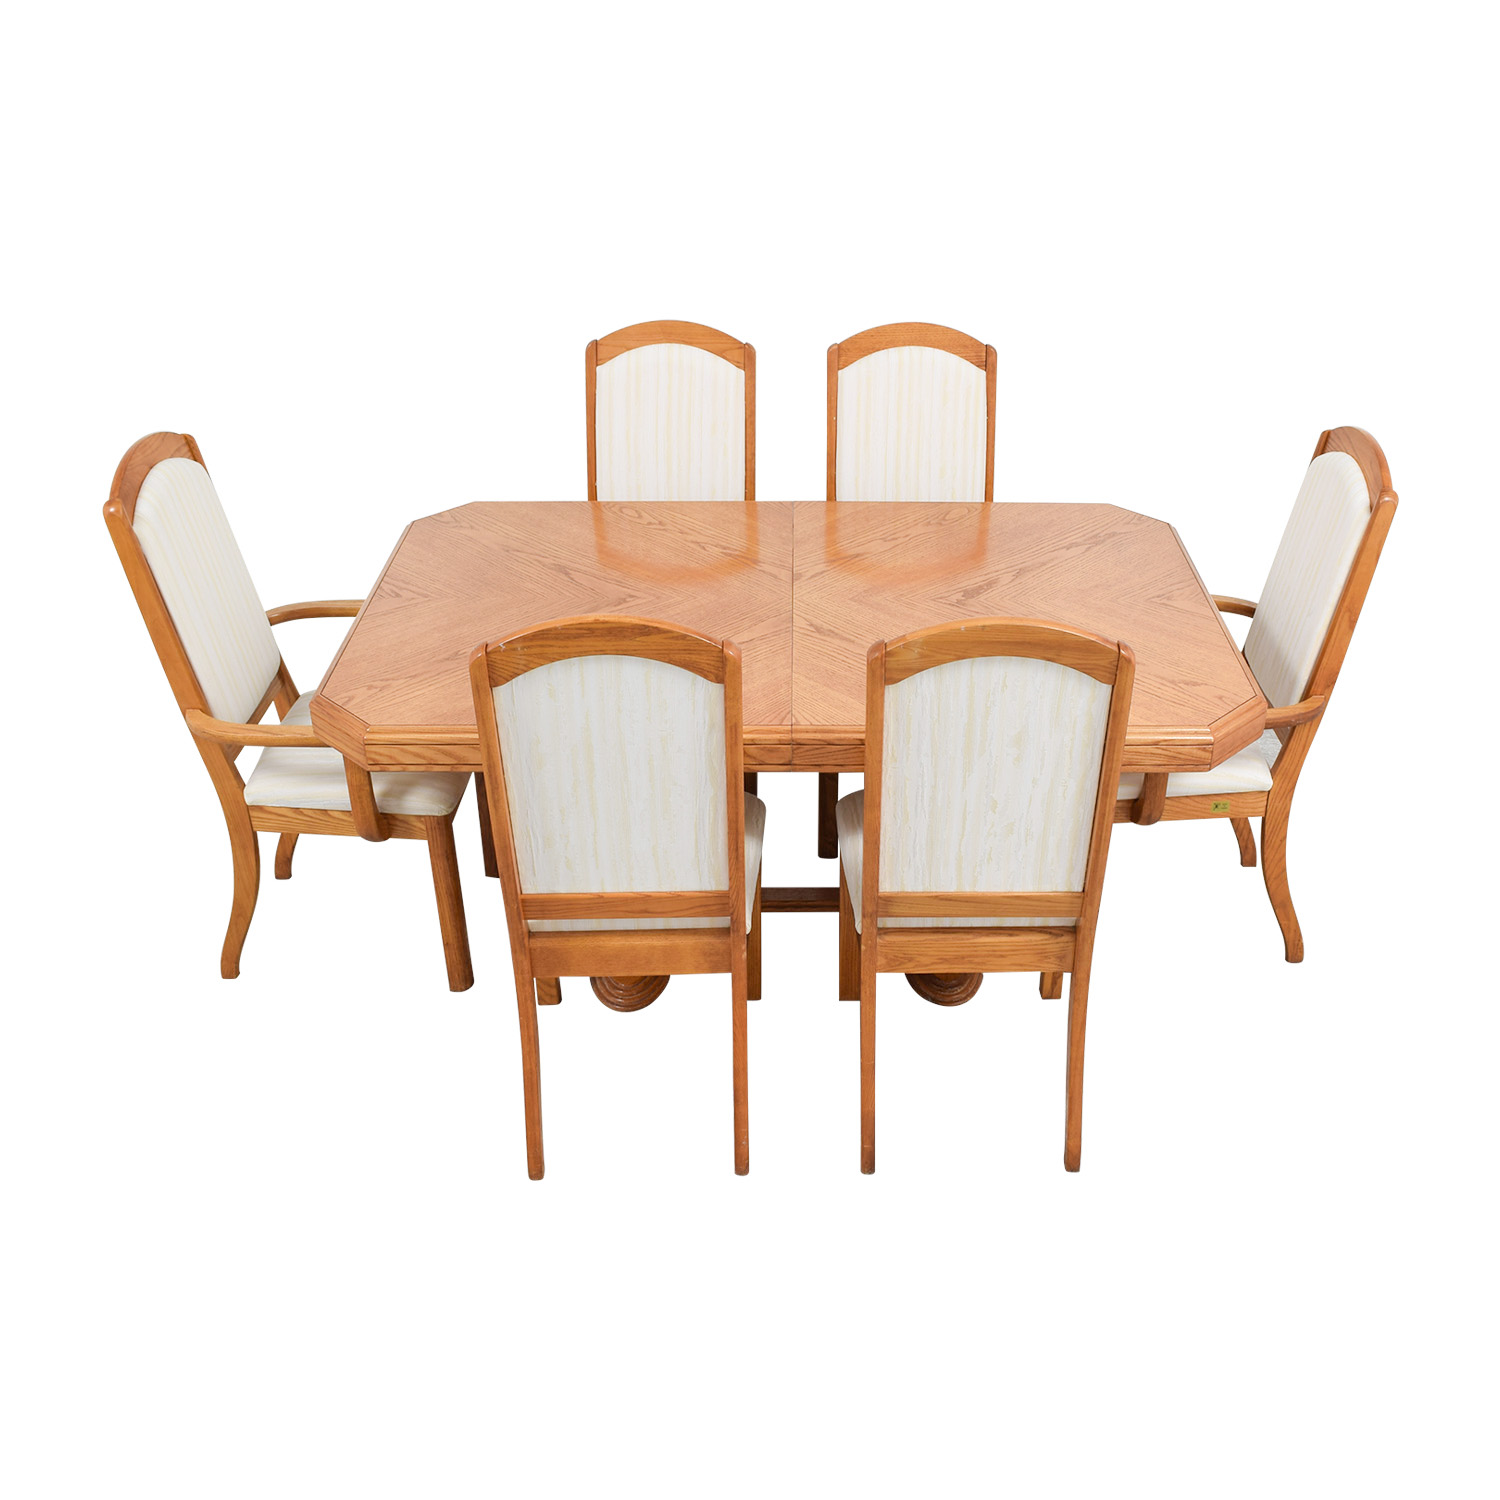 Accese Brothers Wood Dining Table with Upholstered Chairs / Dining Sets